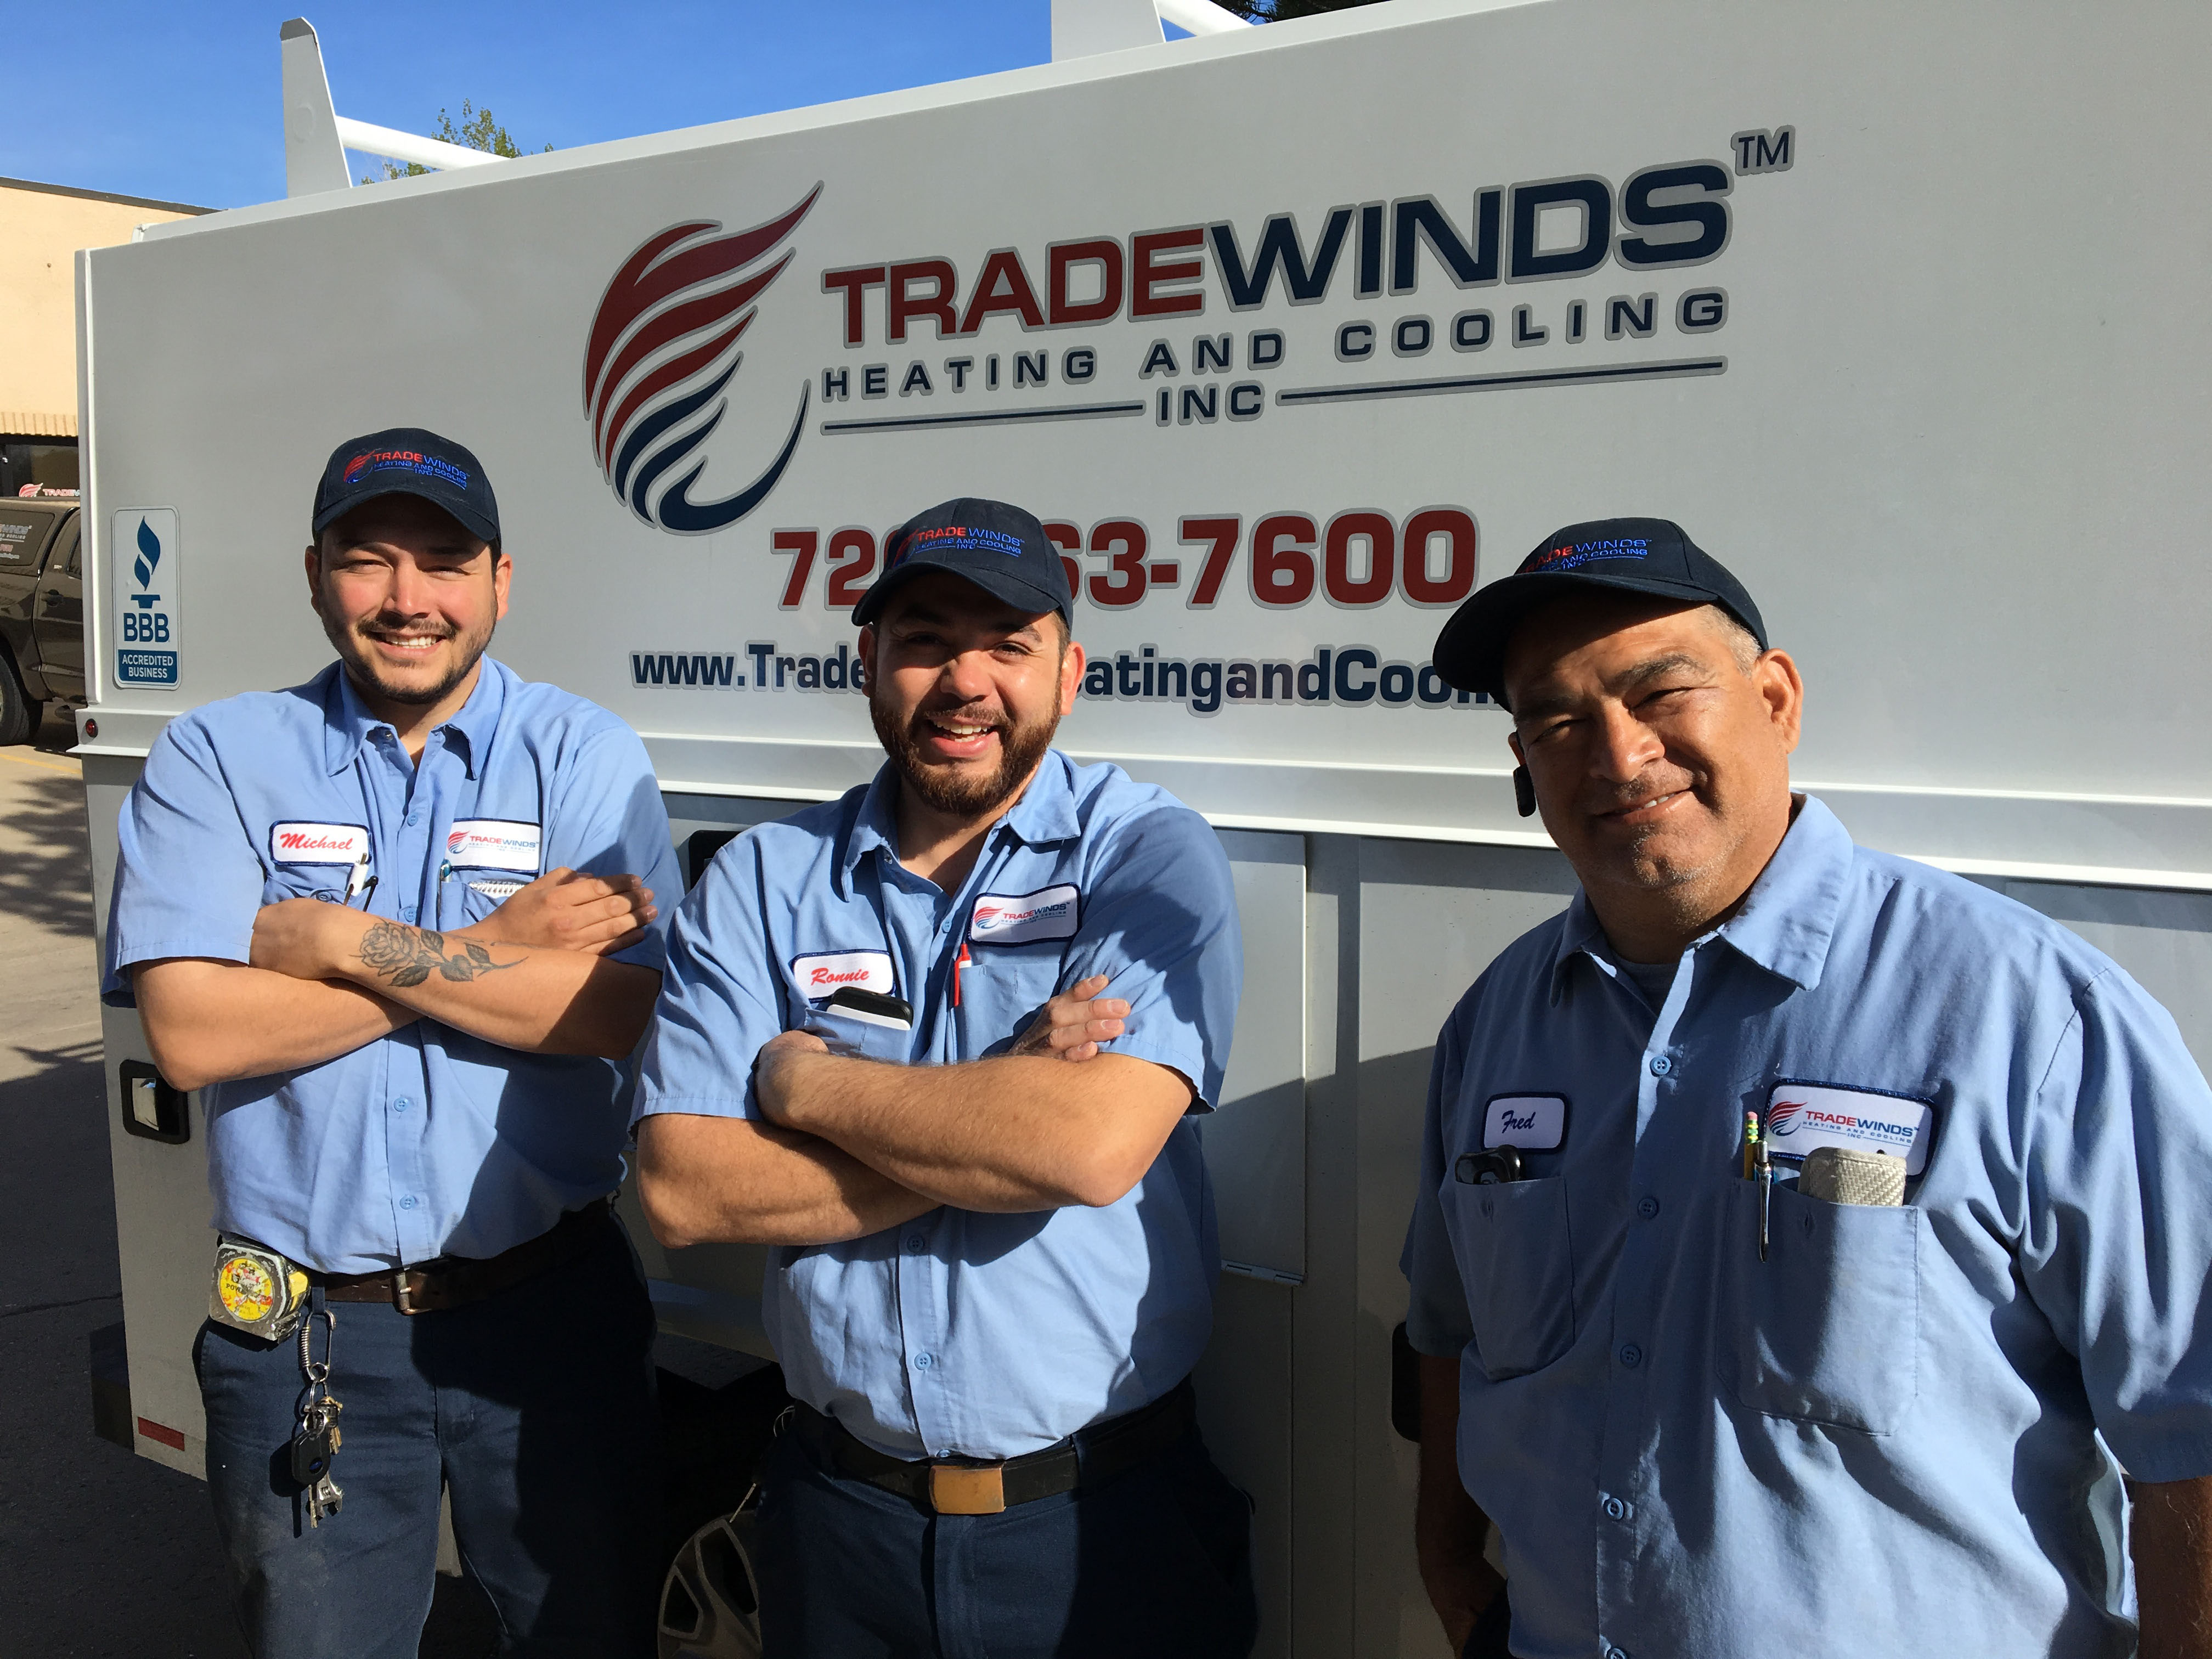 Colorado's Top Rated Local® HVAC Award Winner: Tradewinds Heating and Cooling Inc.